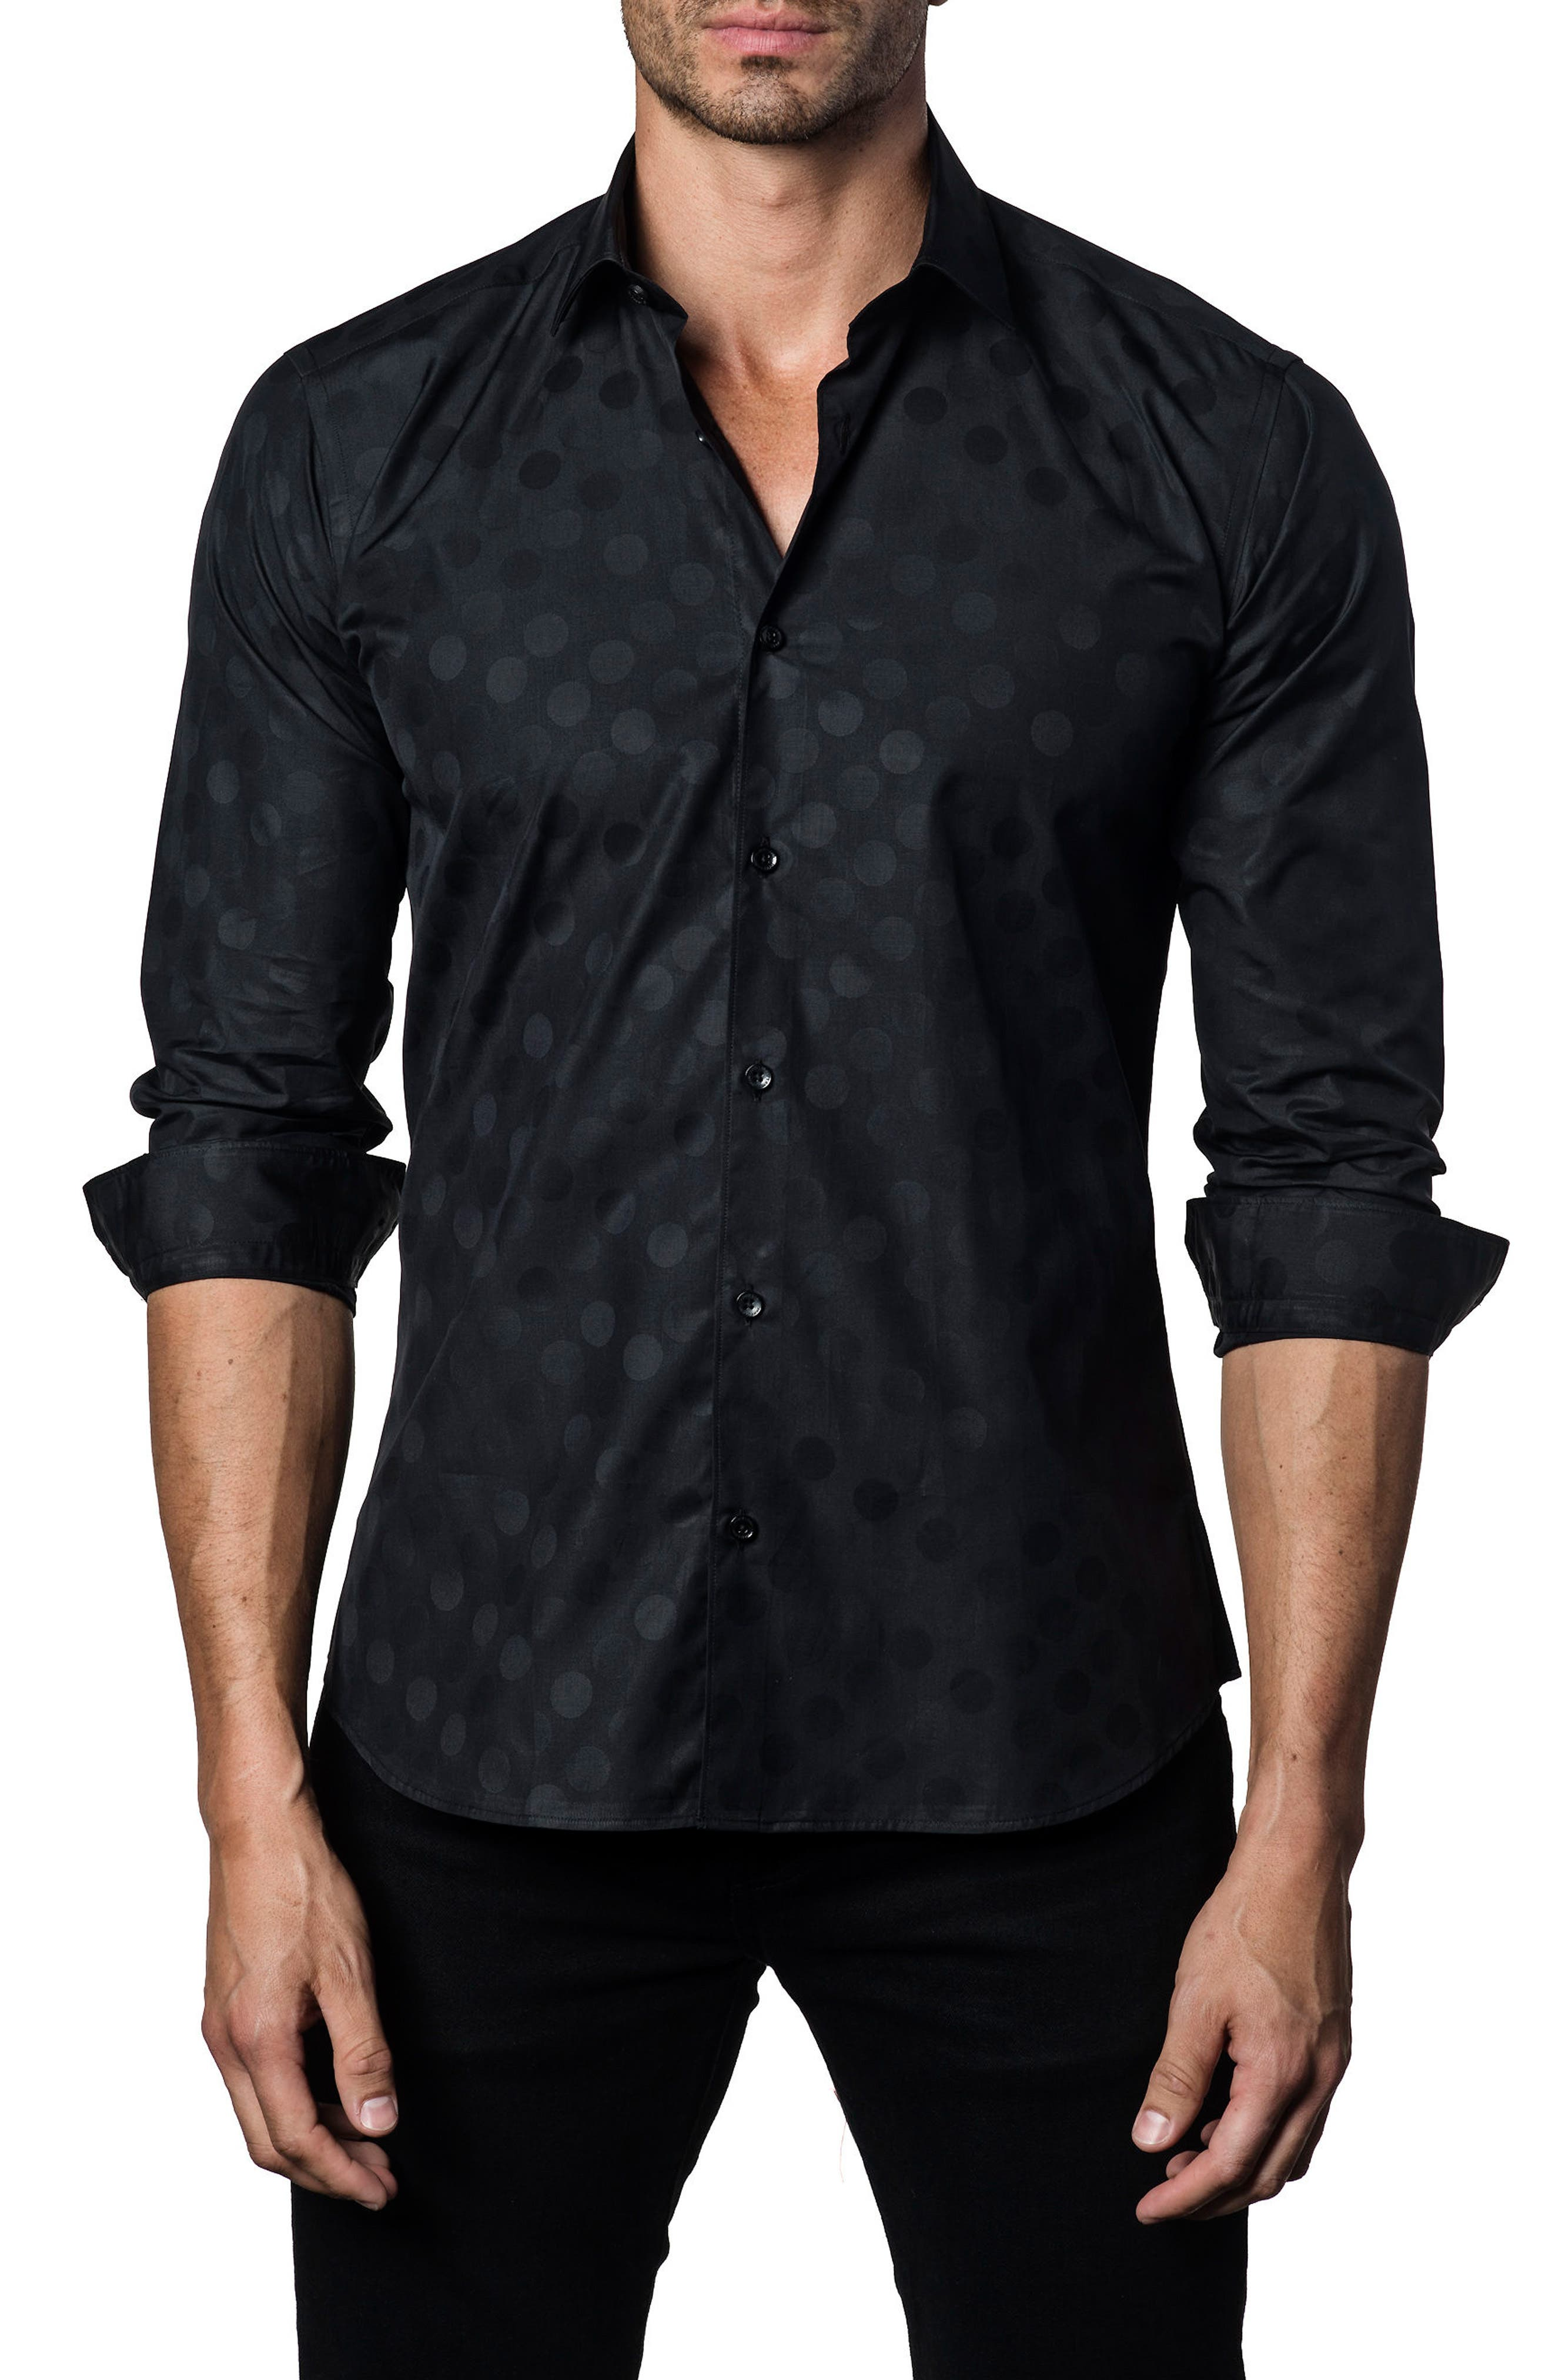 Dot Print Sport Shirt,                         Main,                         color, Black Polka Dot Jacquard